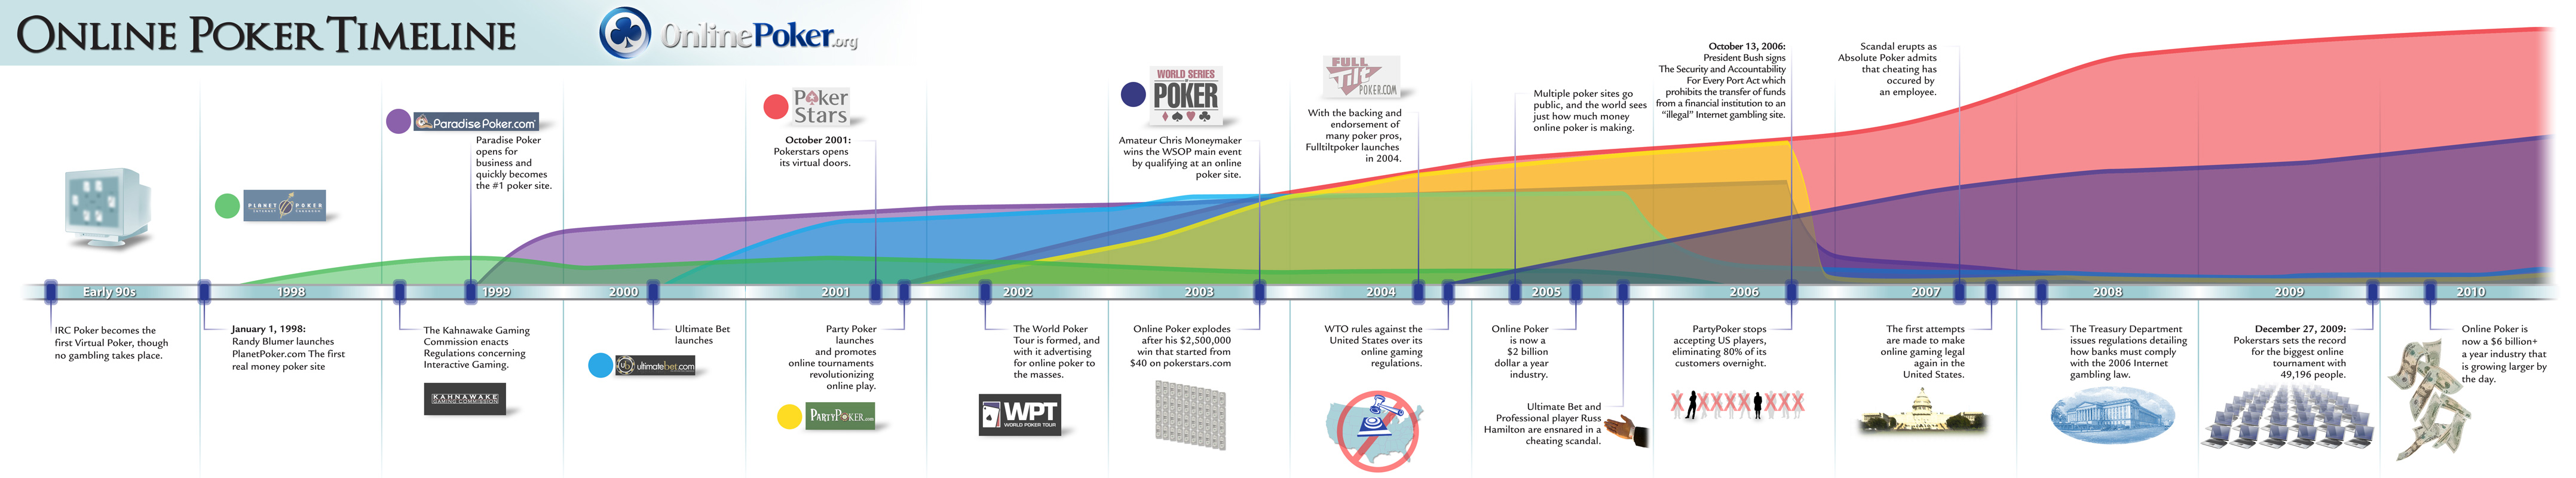 timeline of online poker